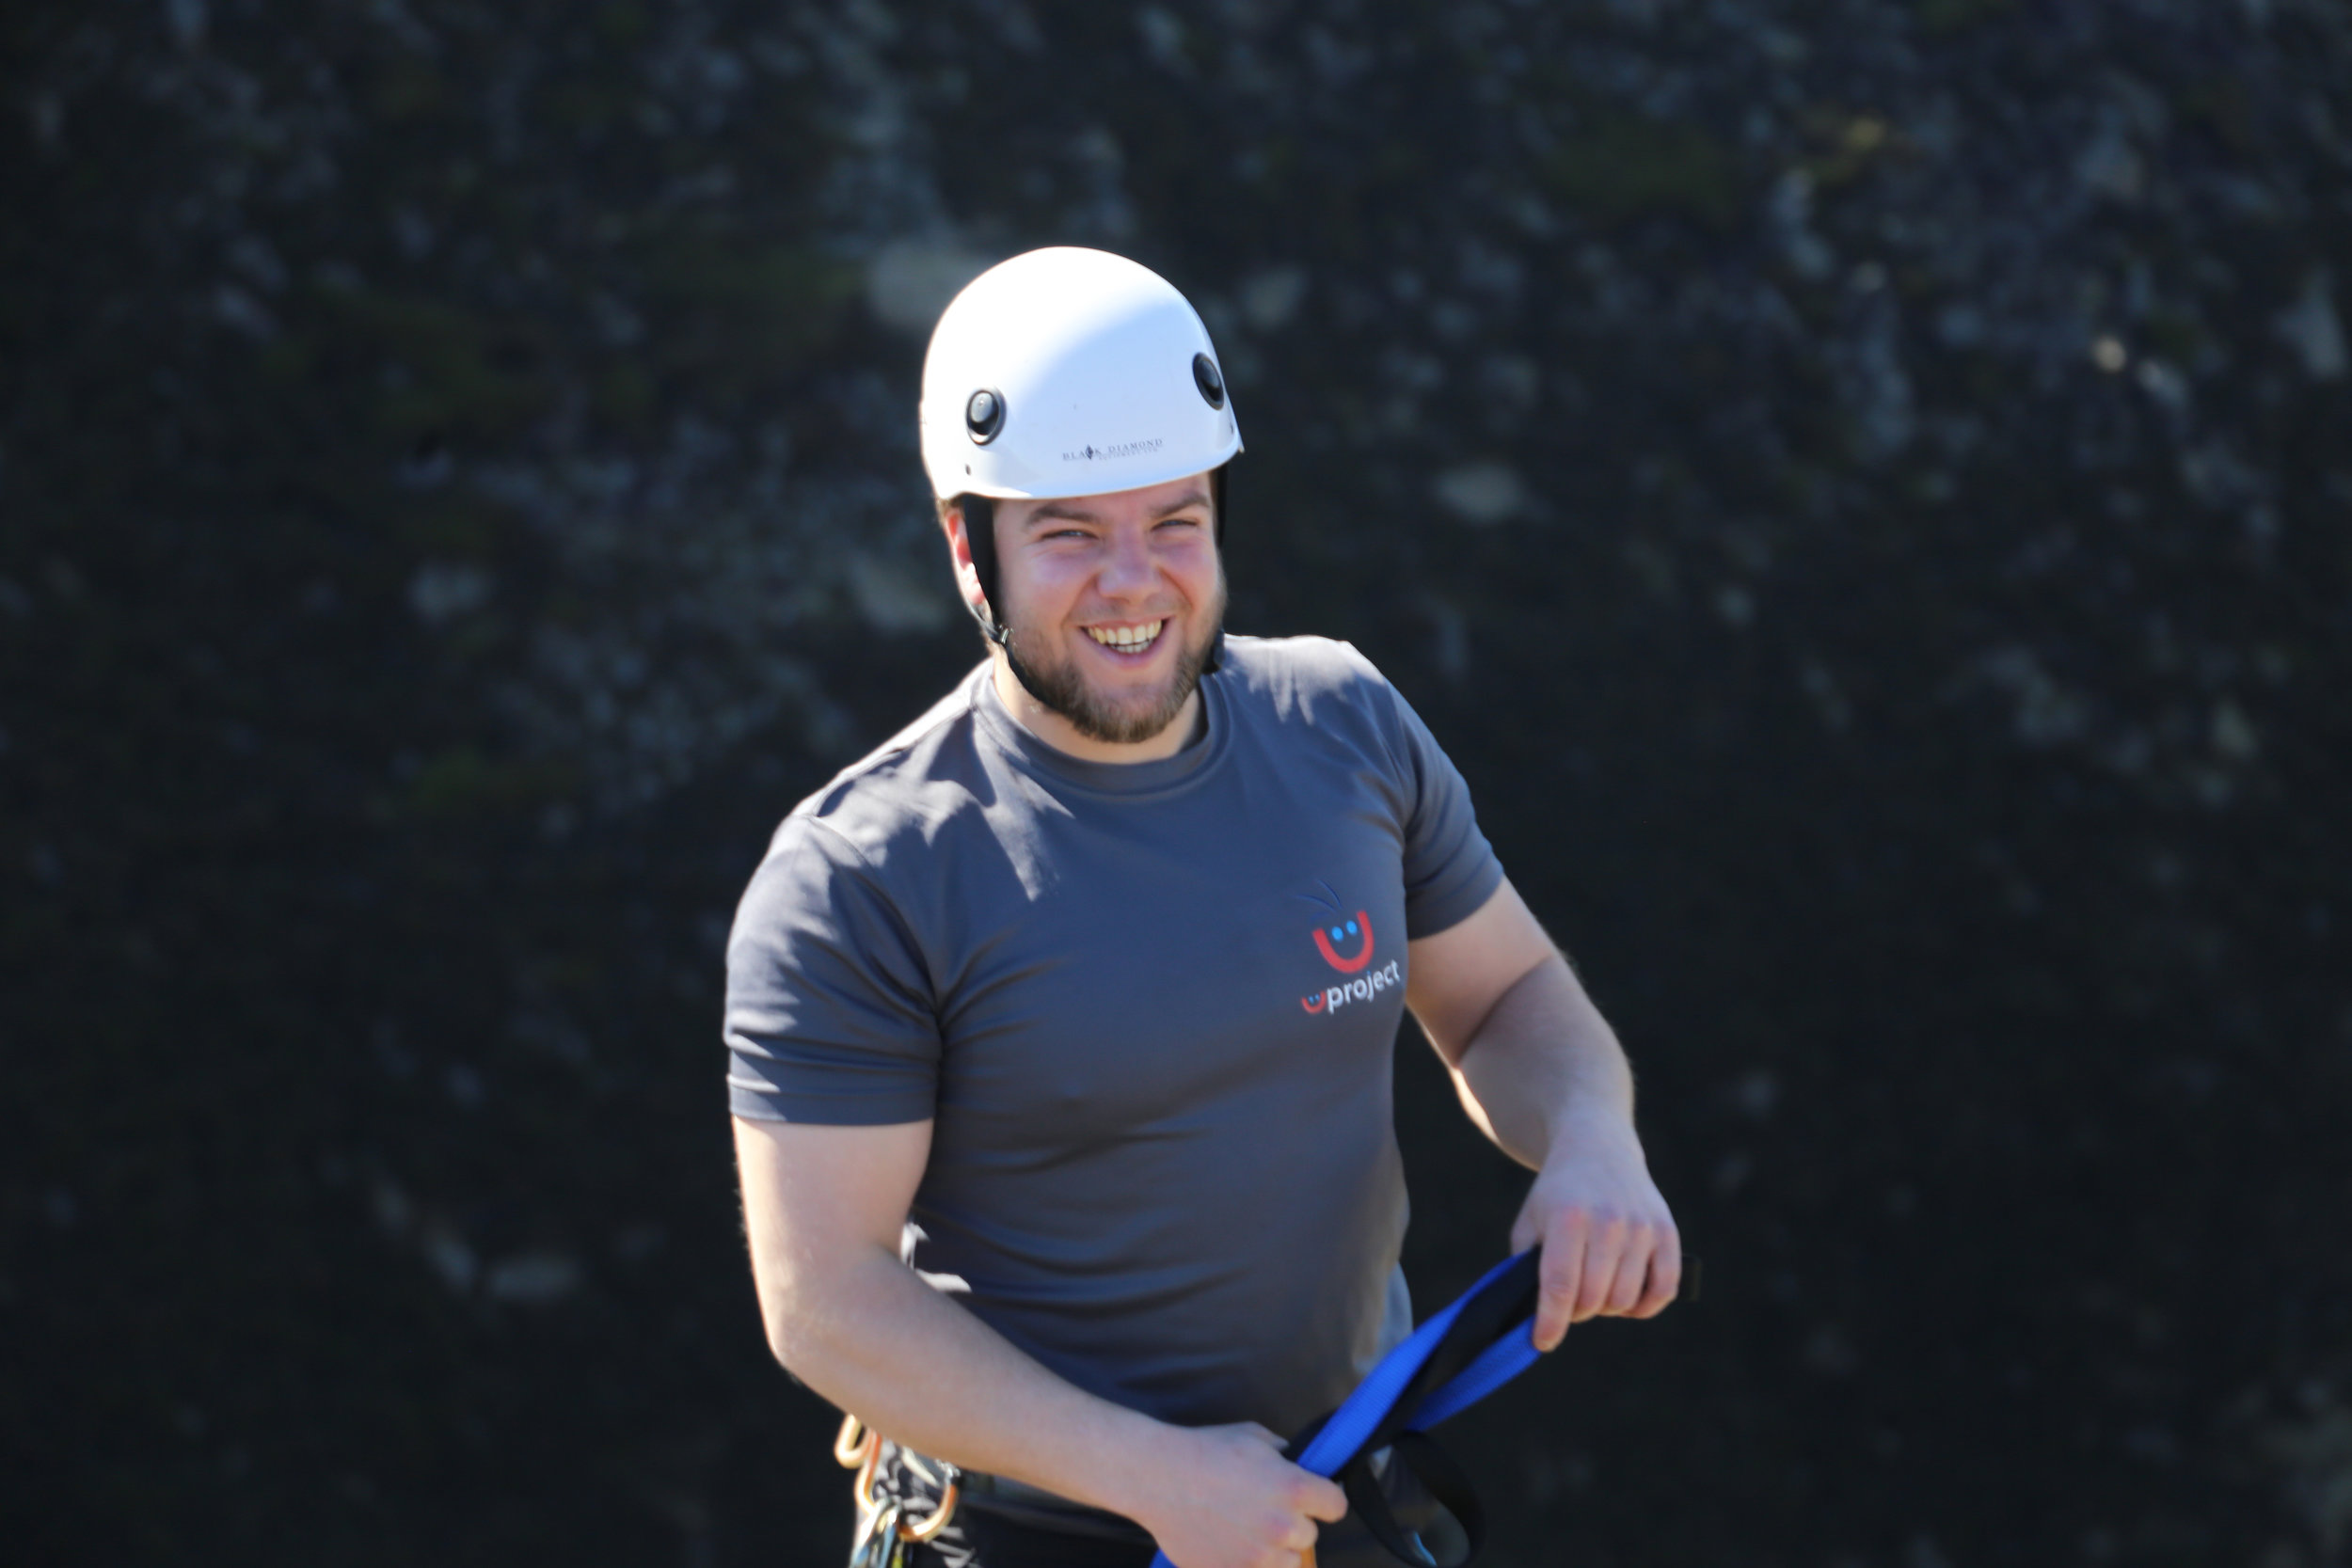 Scott Archibald - A valued member of the team since 2012, leading and assisting with outdoor activities locally and in mountain areas of the UK.Scott fits with the UProjects ethos, friendly and professional he is happy to spend time reassuring and building confidence for those new to adventure activitiesHe holds the Climbing Instructor and Mountain Leader awards; he is also a tutor for level 3-day Walk Leadership and Basic Expedition Leader Awards. National Indoor Climbing Award Scheme (NICAS) instructor delivering GCSE, QCF and Duke of Edinburgh AwardsScott holds specialist awards for working with young people with disabilitiesScott can often be spotted with Frank the friendly mountain dog!